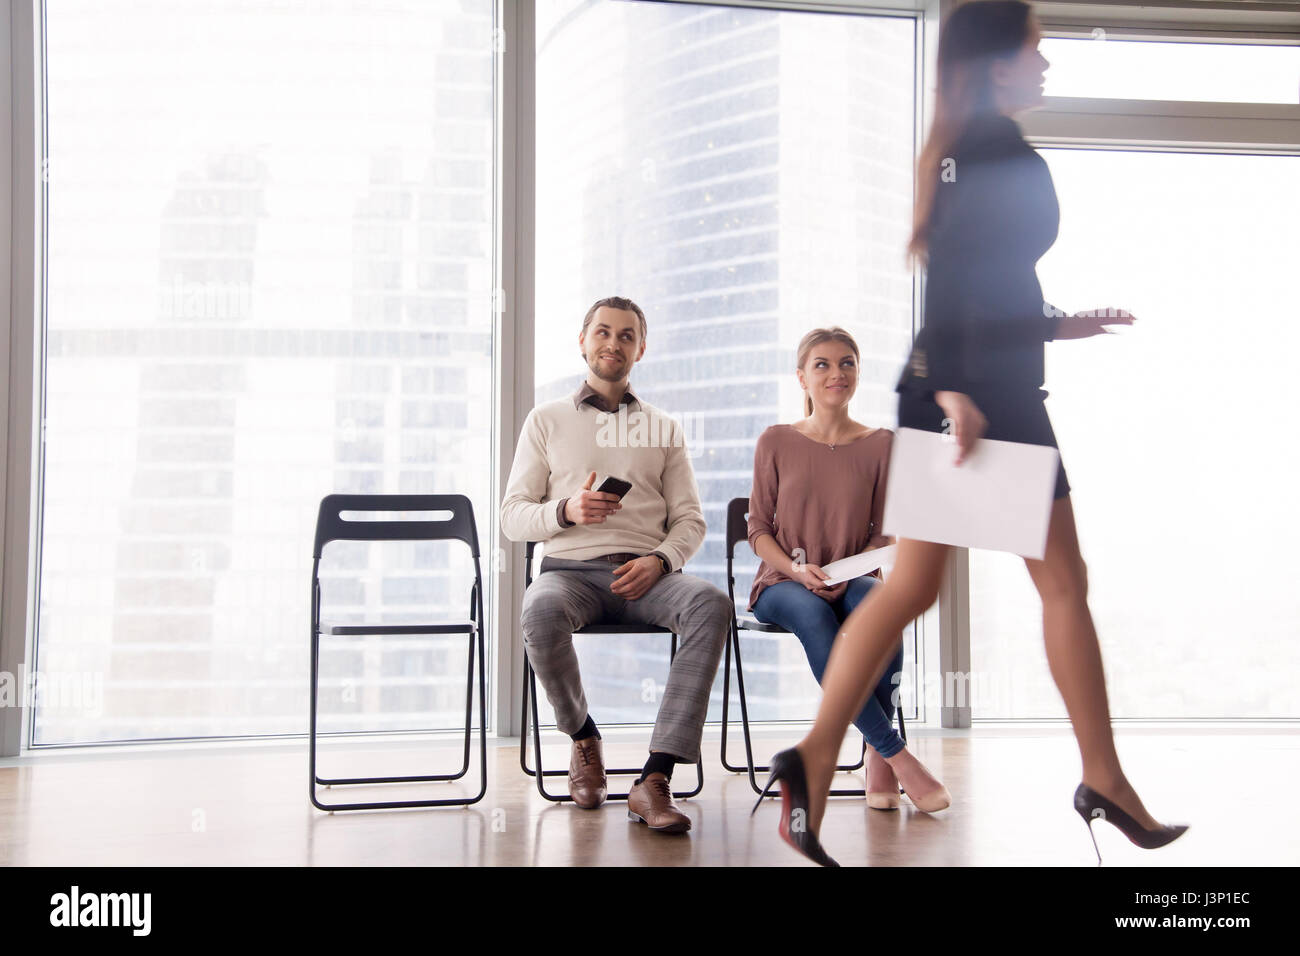 Job candidates gloating over female competitor walking after uns - Stock Image